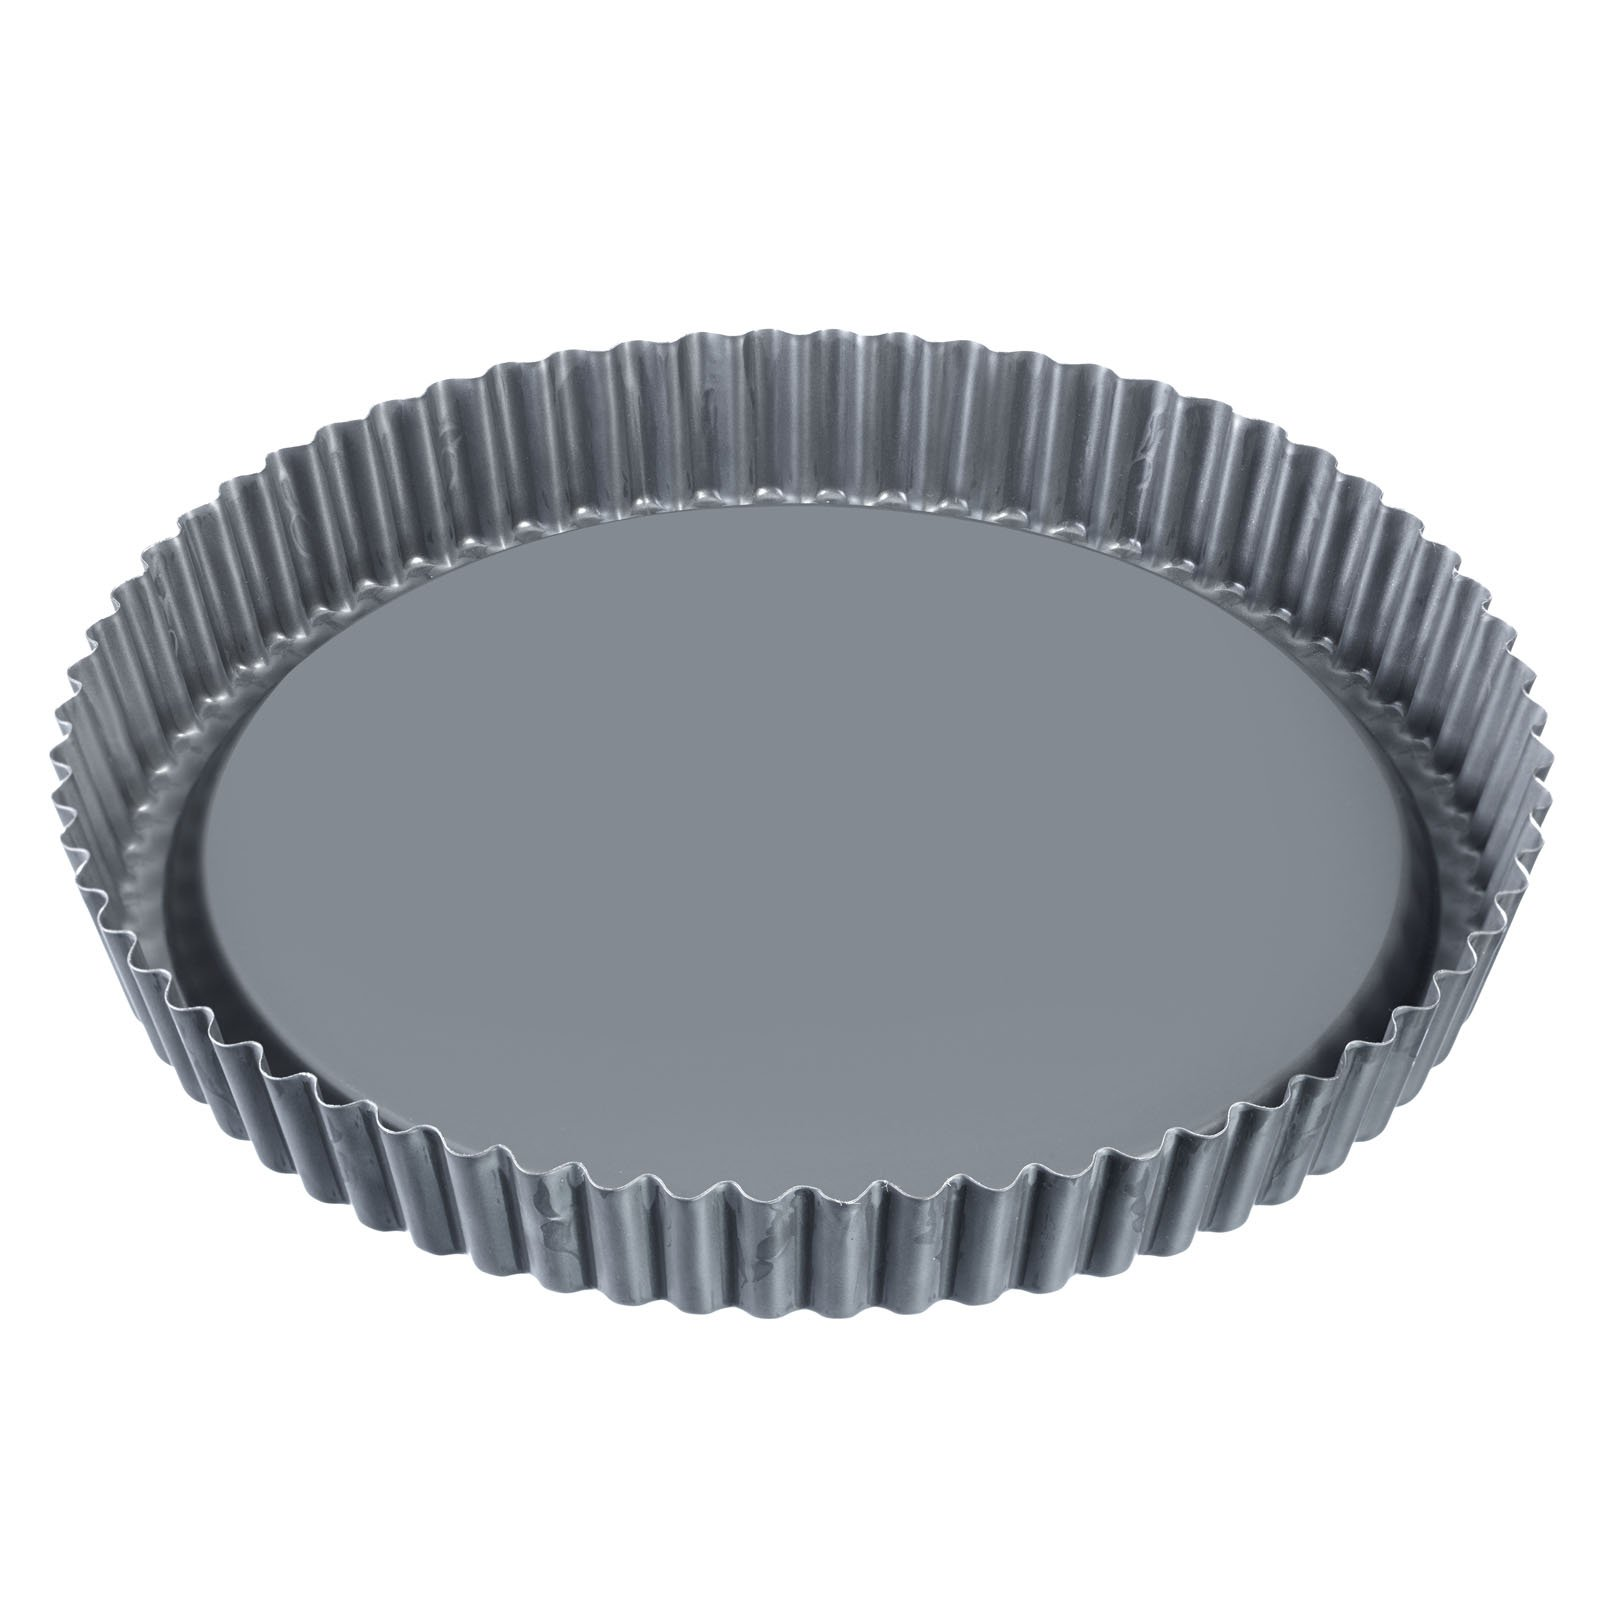 Westmark 33942260 Fruit Tart Tin Nonstick Coated Perfect for Cakes, Pies, Tarts, Flans, 11'', Gray